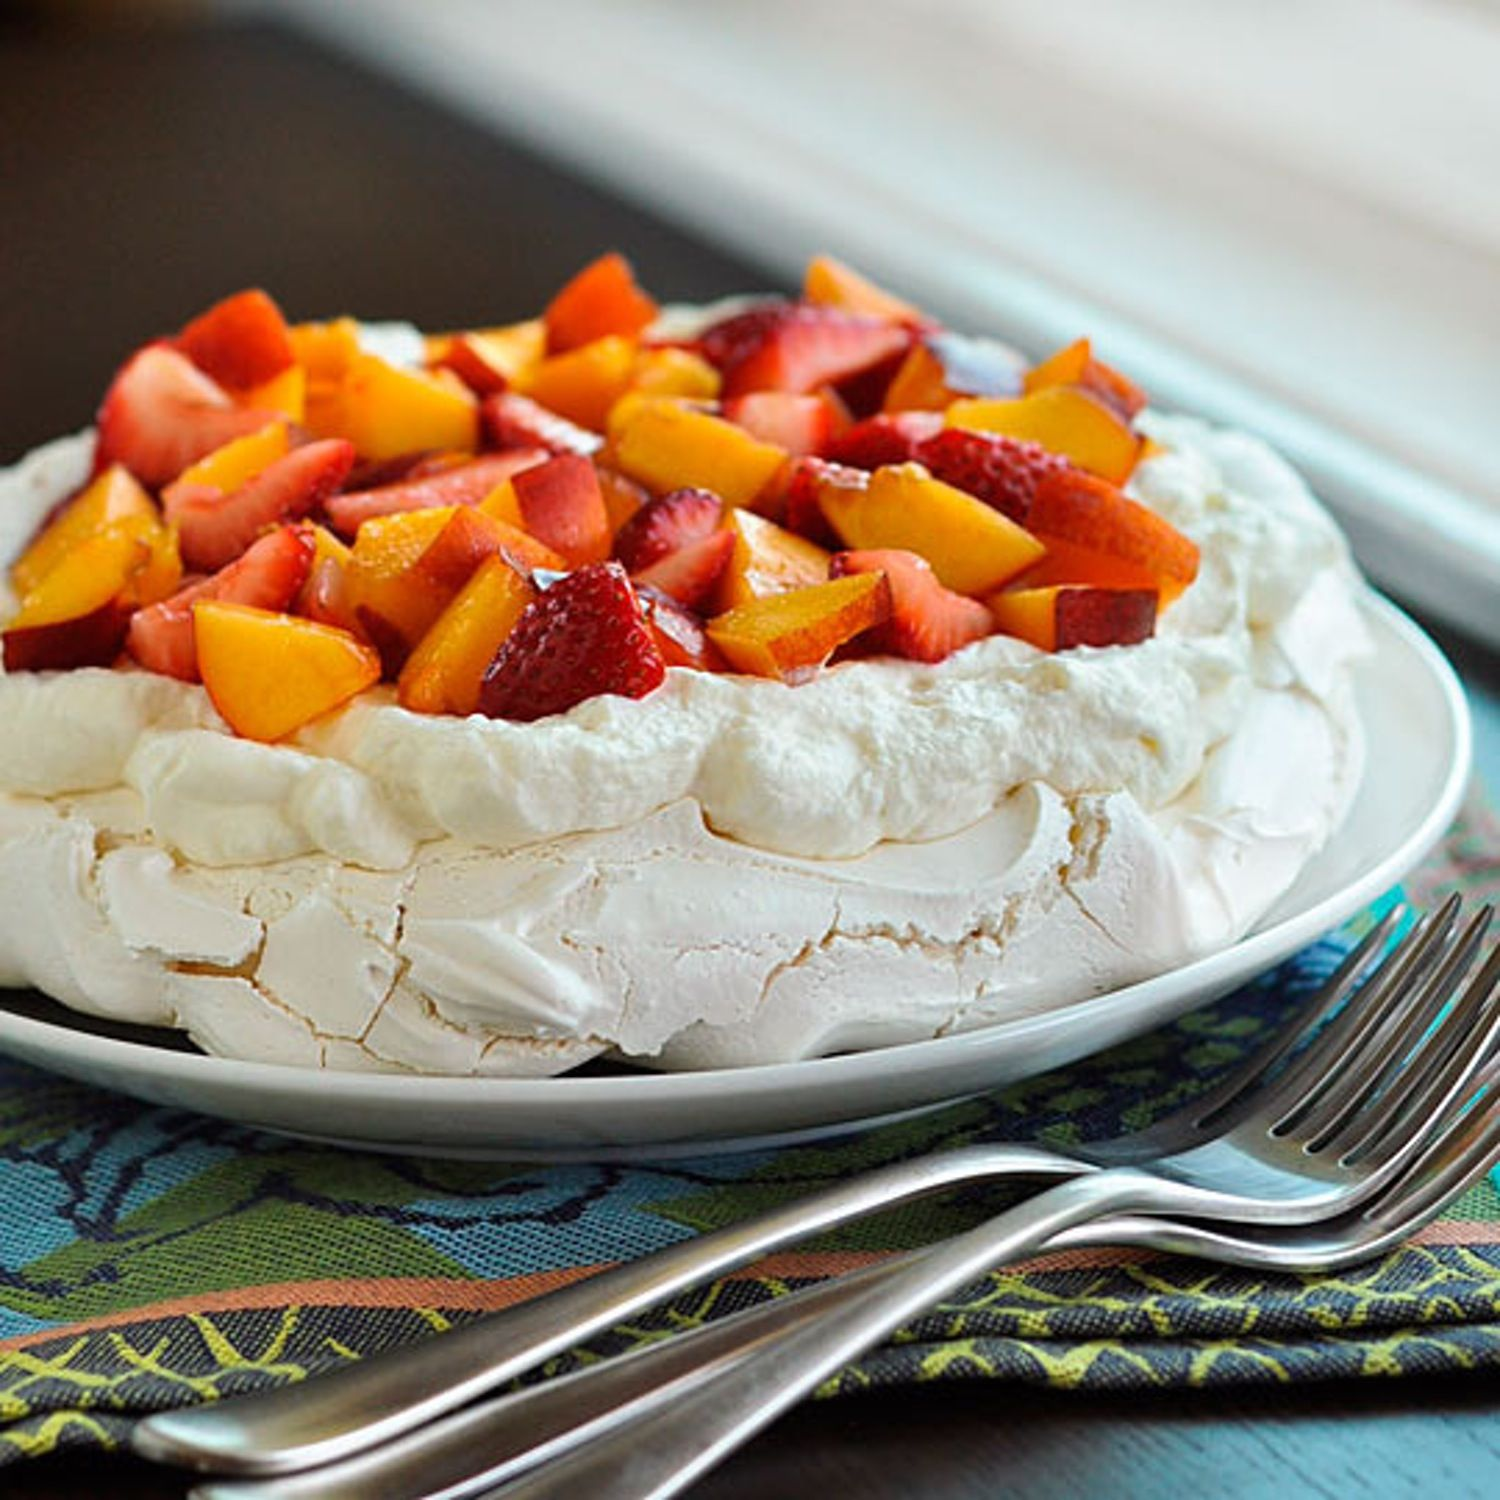 How to Make Light, Airy Pavlova